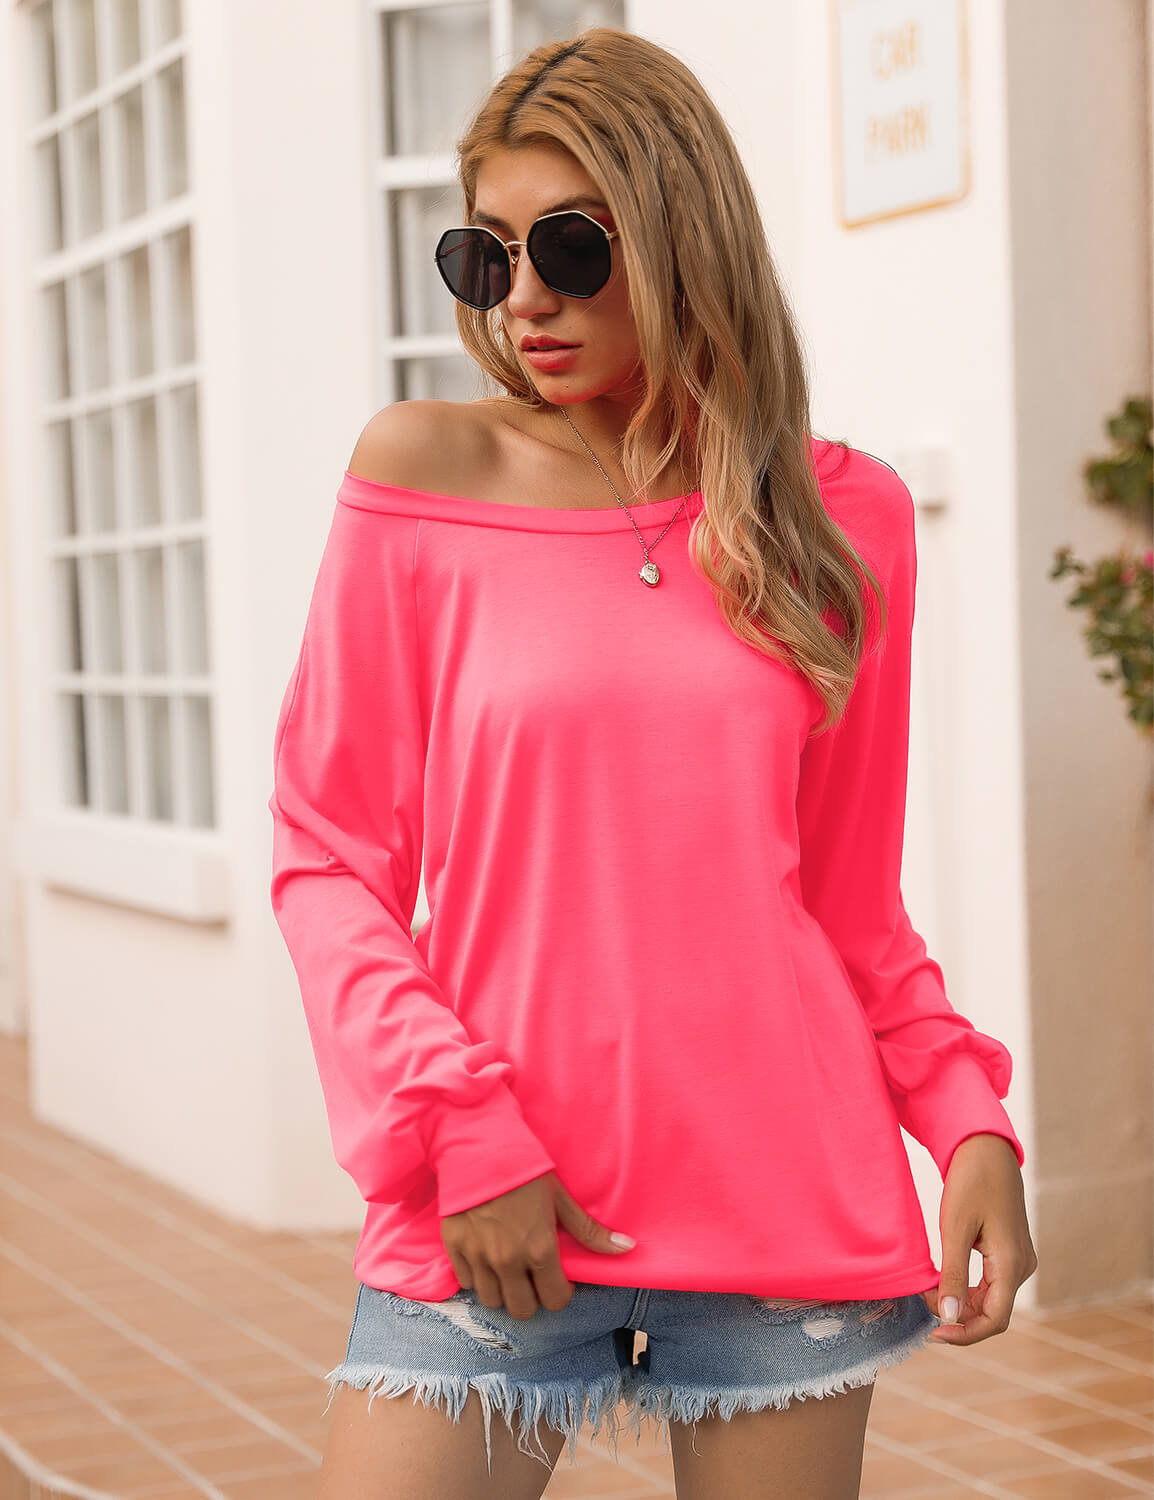 Blooming Jelly_Bright Rose Cold Shoulder T-Shirt_Deep Pink_153132_78_Streetwear Fashion Women Outfits_Tops_T-Shirt